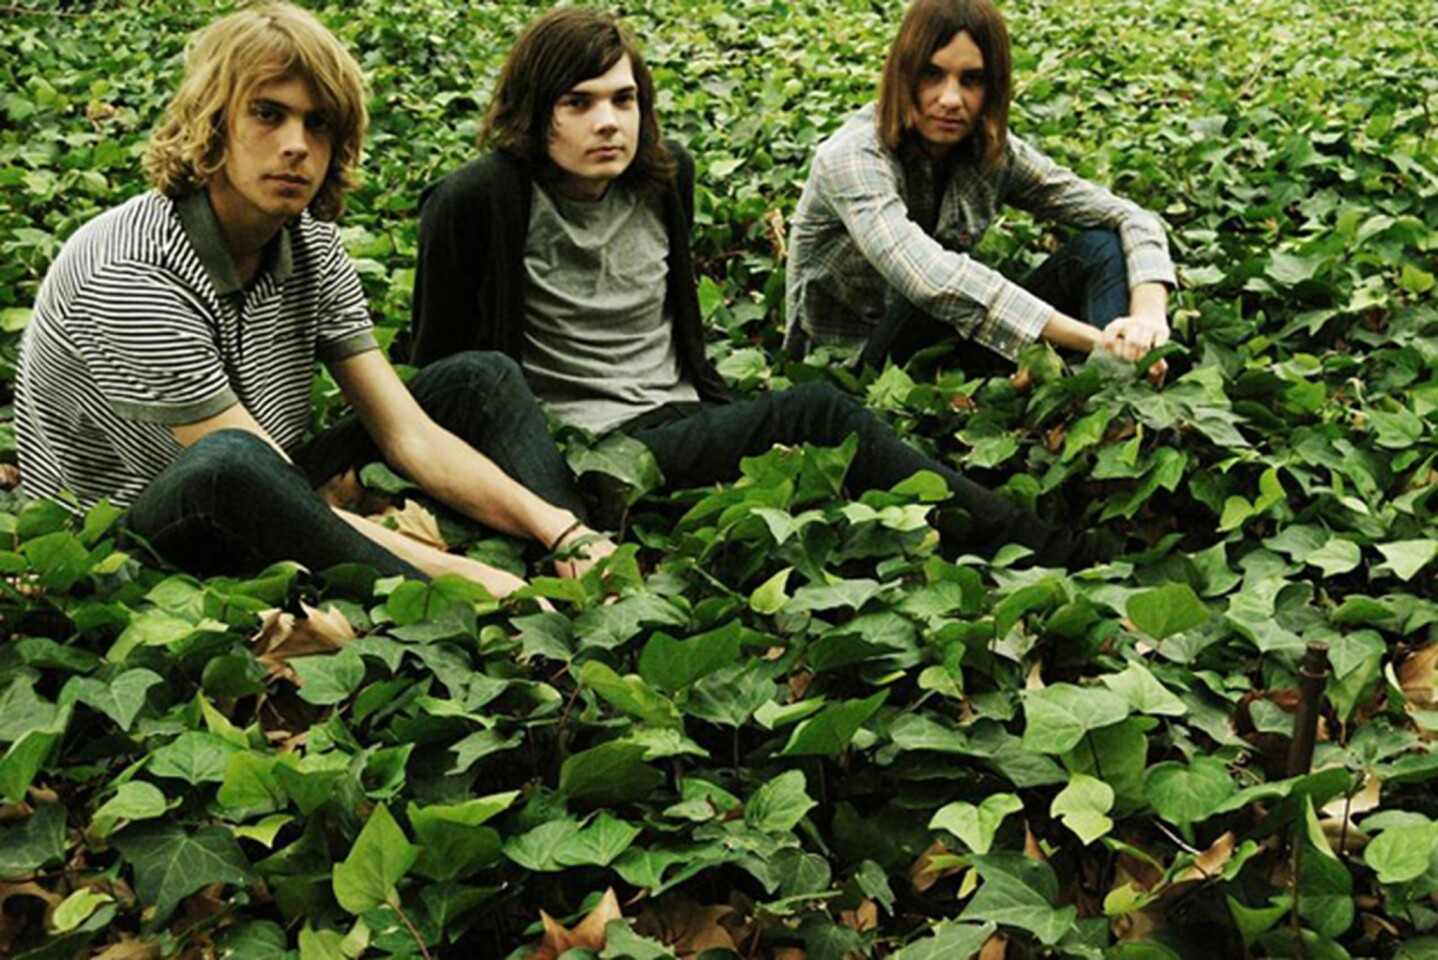 """This Australian band led by the alarmingly young Kevin Parker continued to mine a rich vein of classic psychedelic rock on its justly acclaimed sophomore album, """"Lonerism."""" But it's never sounded more powerful than this heavy, three-minute slab of fuzzy stomp-rock, which seems ripped from some intersection of 1969 London, Richard Linklater's """"Dazed and Confused"""" and today."""